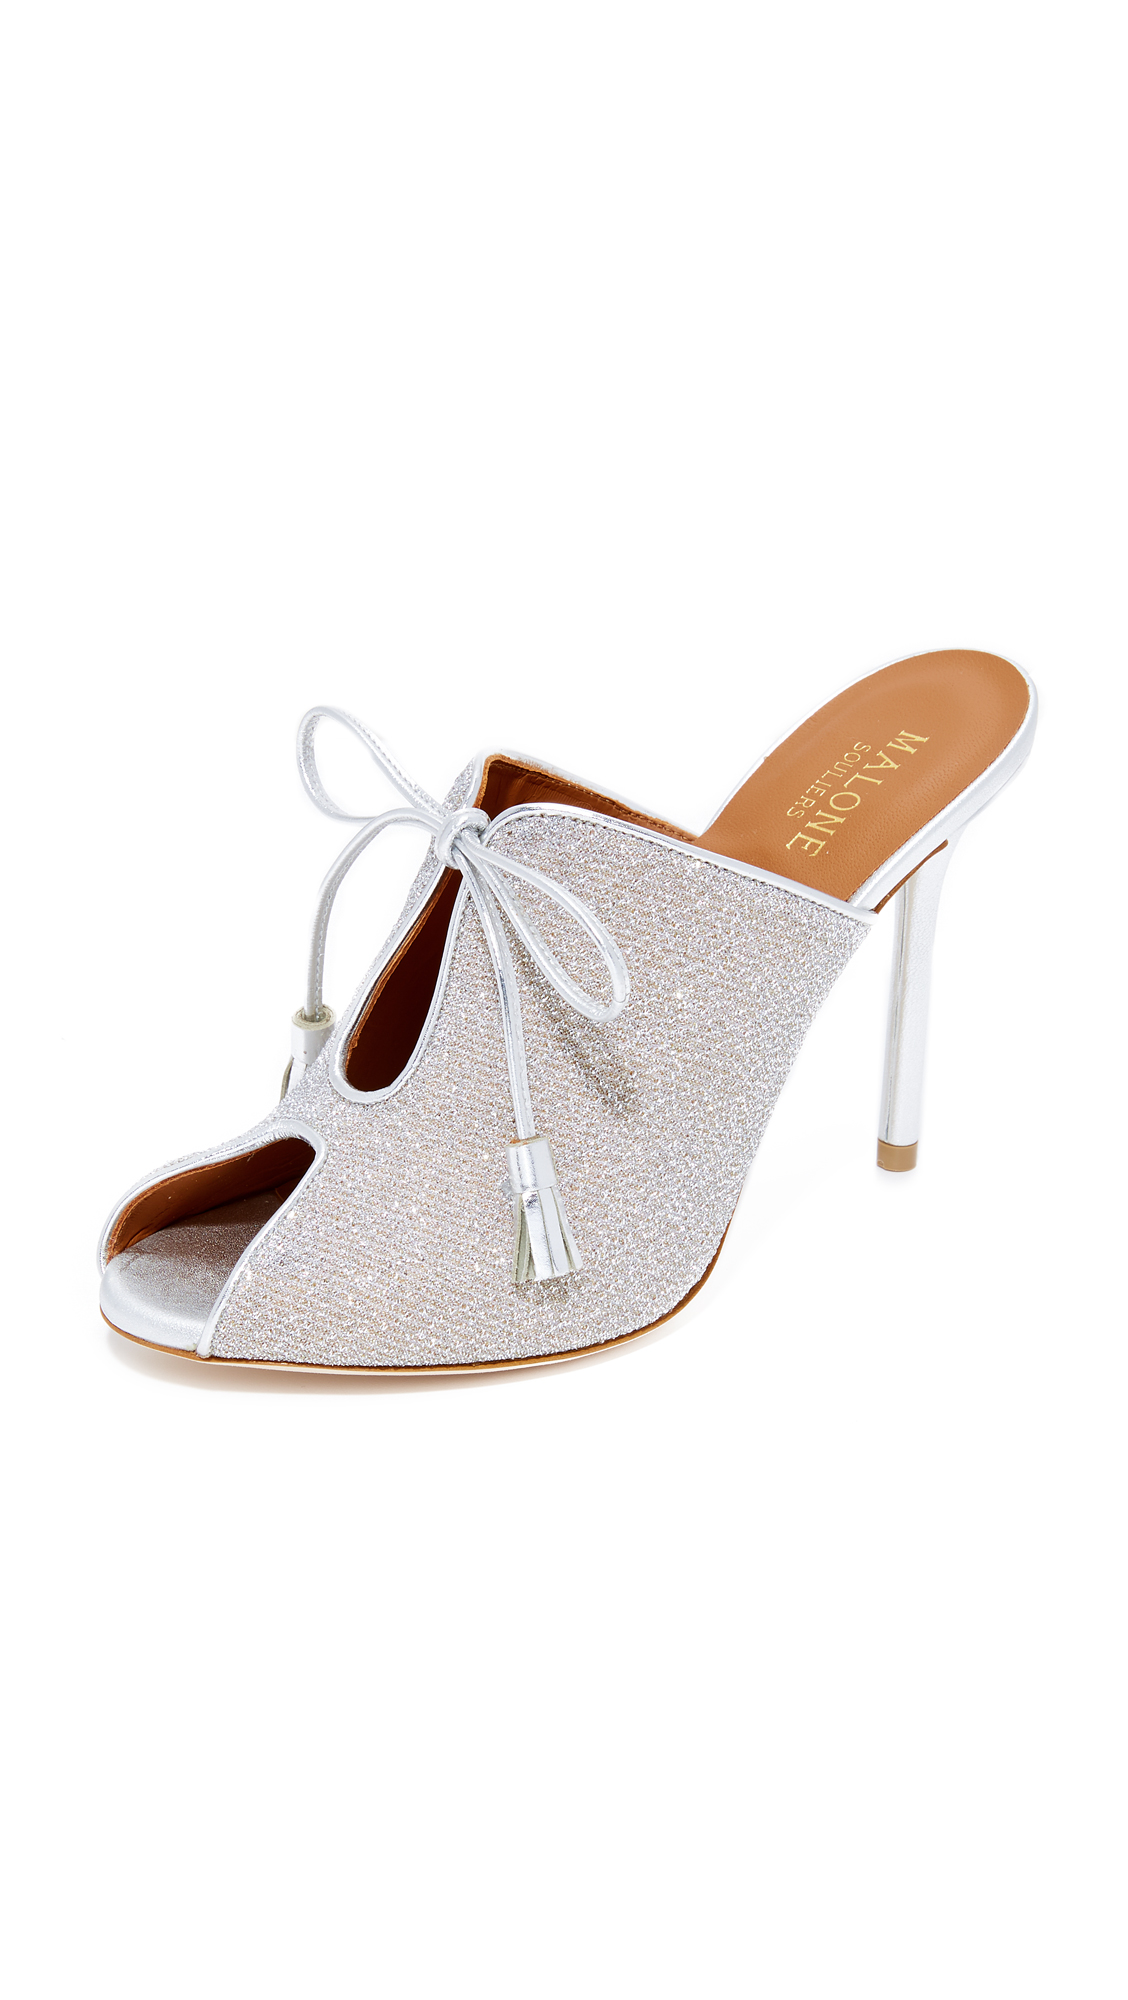 Malone Souliers Dawn Mules - Silver/Silver/Silver